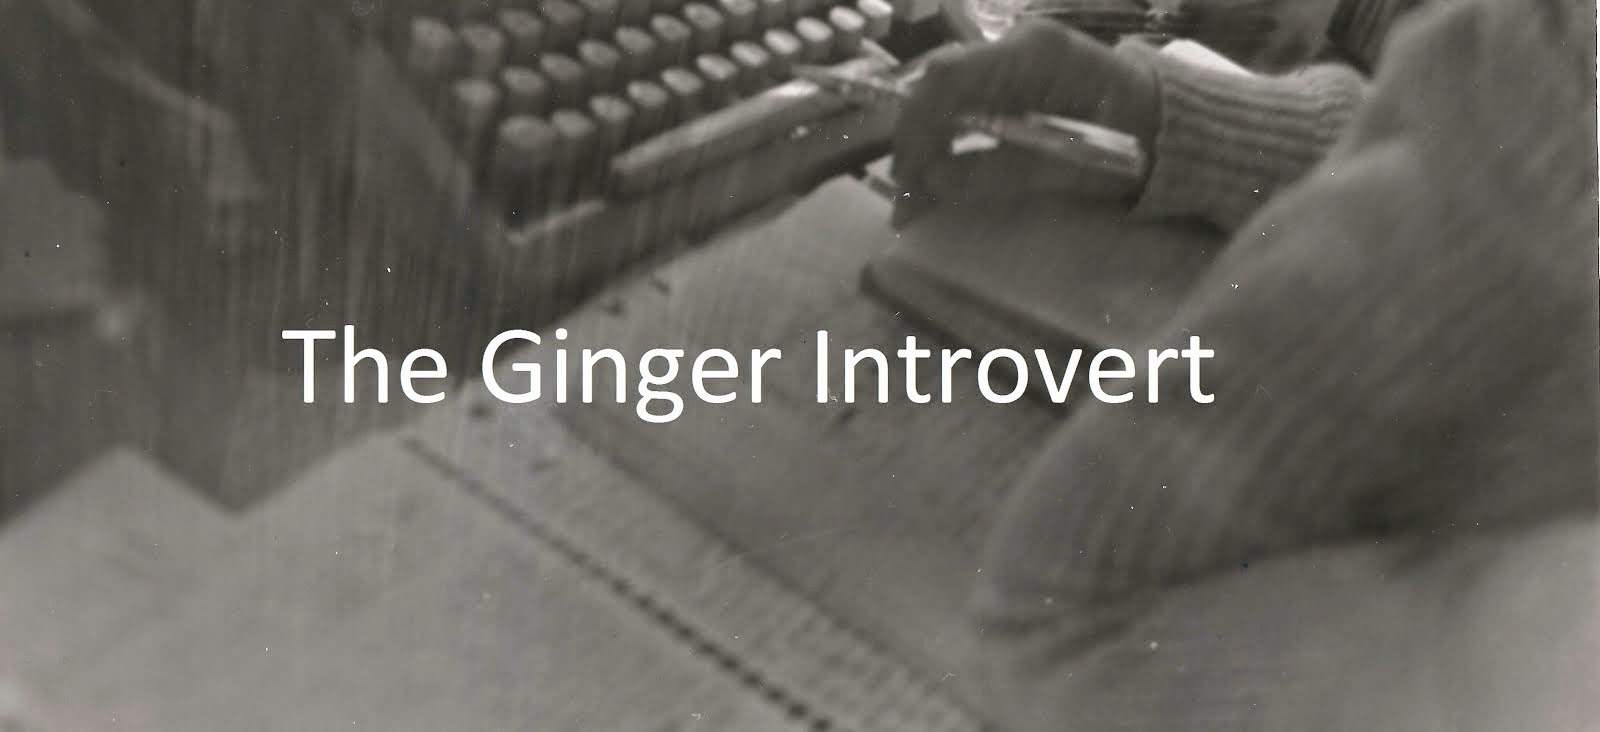 The Ginger Introvert